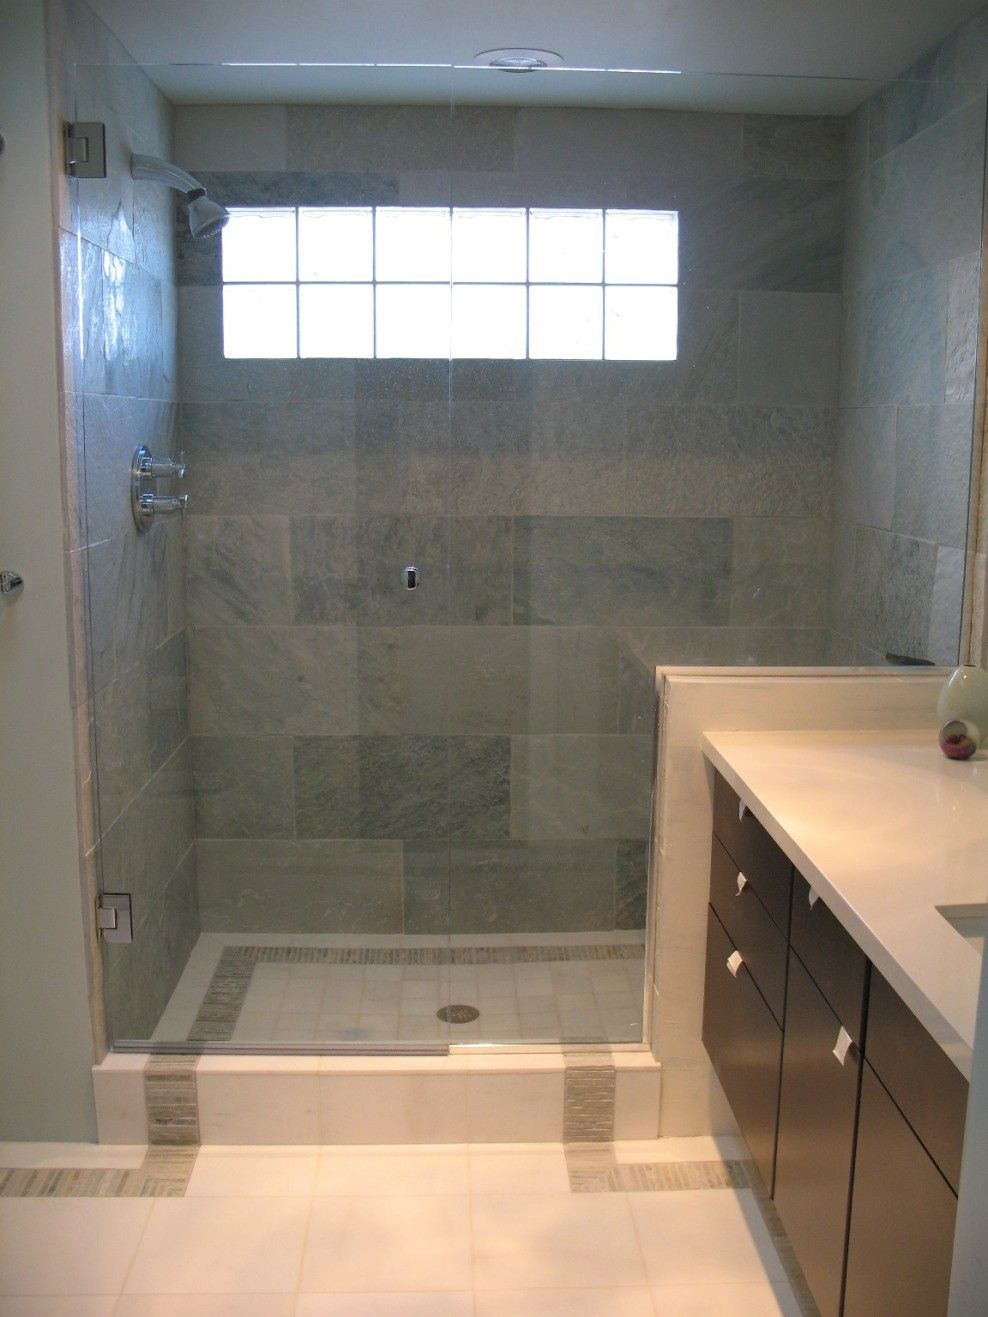 1000  images about bathroom window on Pinterest   Glass block windows  Faux stained glass and White subway tiles. 1000  images about bathroom window on Pinterest   Glass block